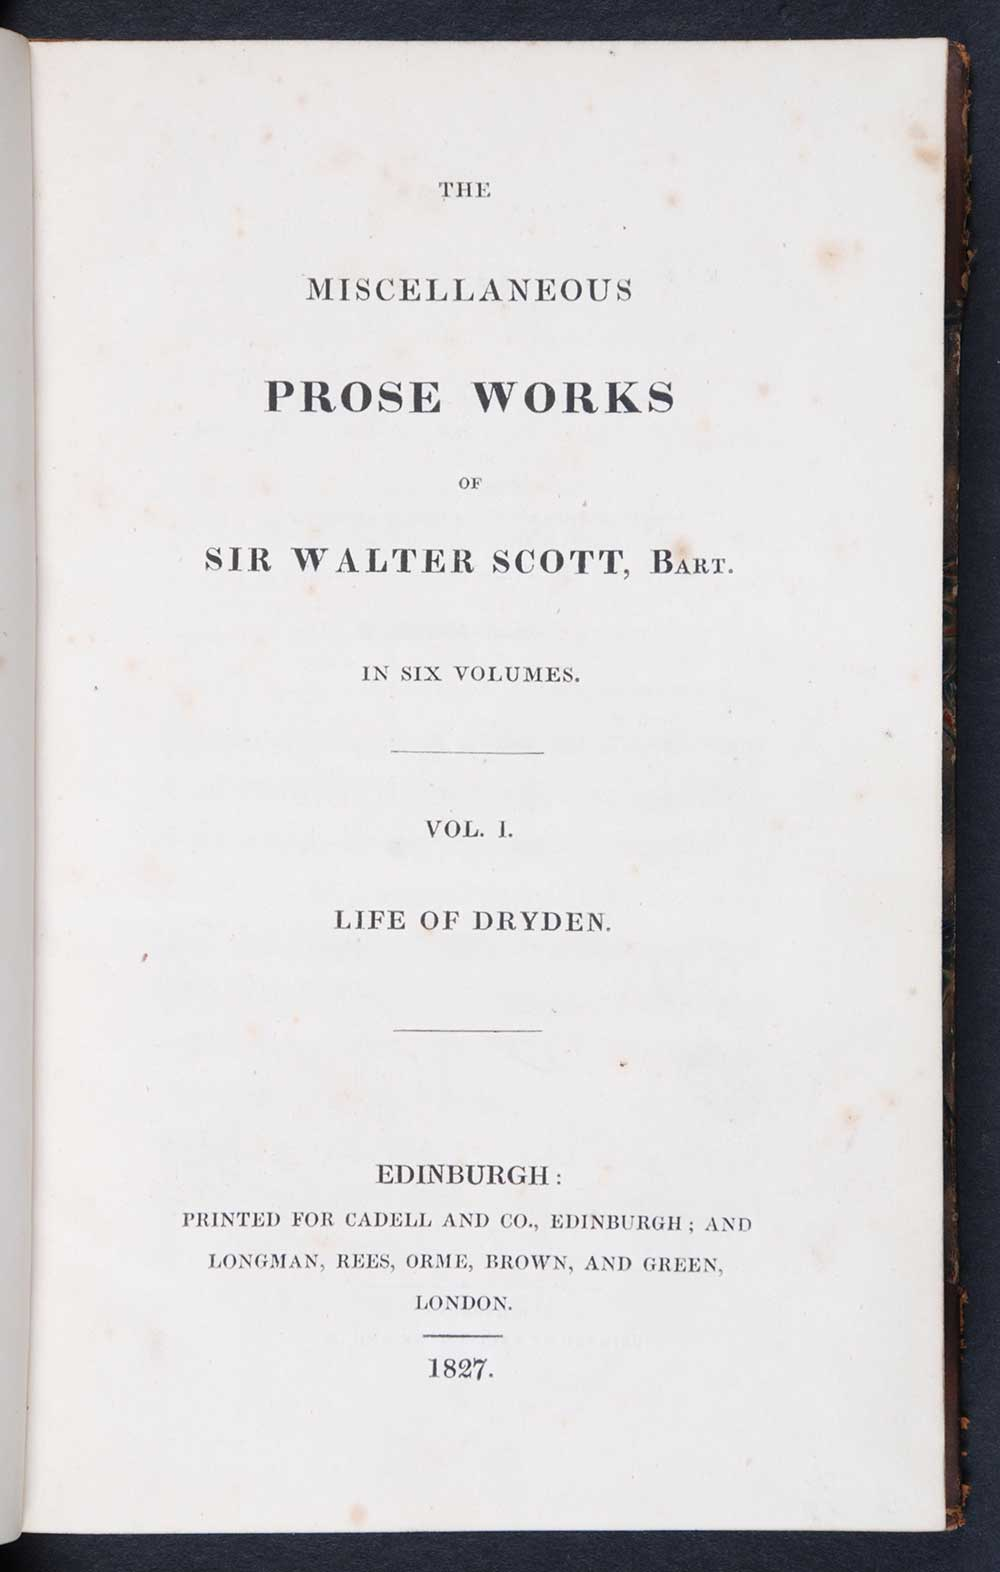 Sir Walter Scott. <em>The miscellaneous prose works of Sir Walter Scott, bart.</em> [1st edition] Edinburgh: Printed for Cadell and Co., Edinburgh; and Longman, Rees, Orme, Brown, and Green, London, 1827. Six volumes; Vol. 1 displayed.